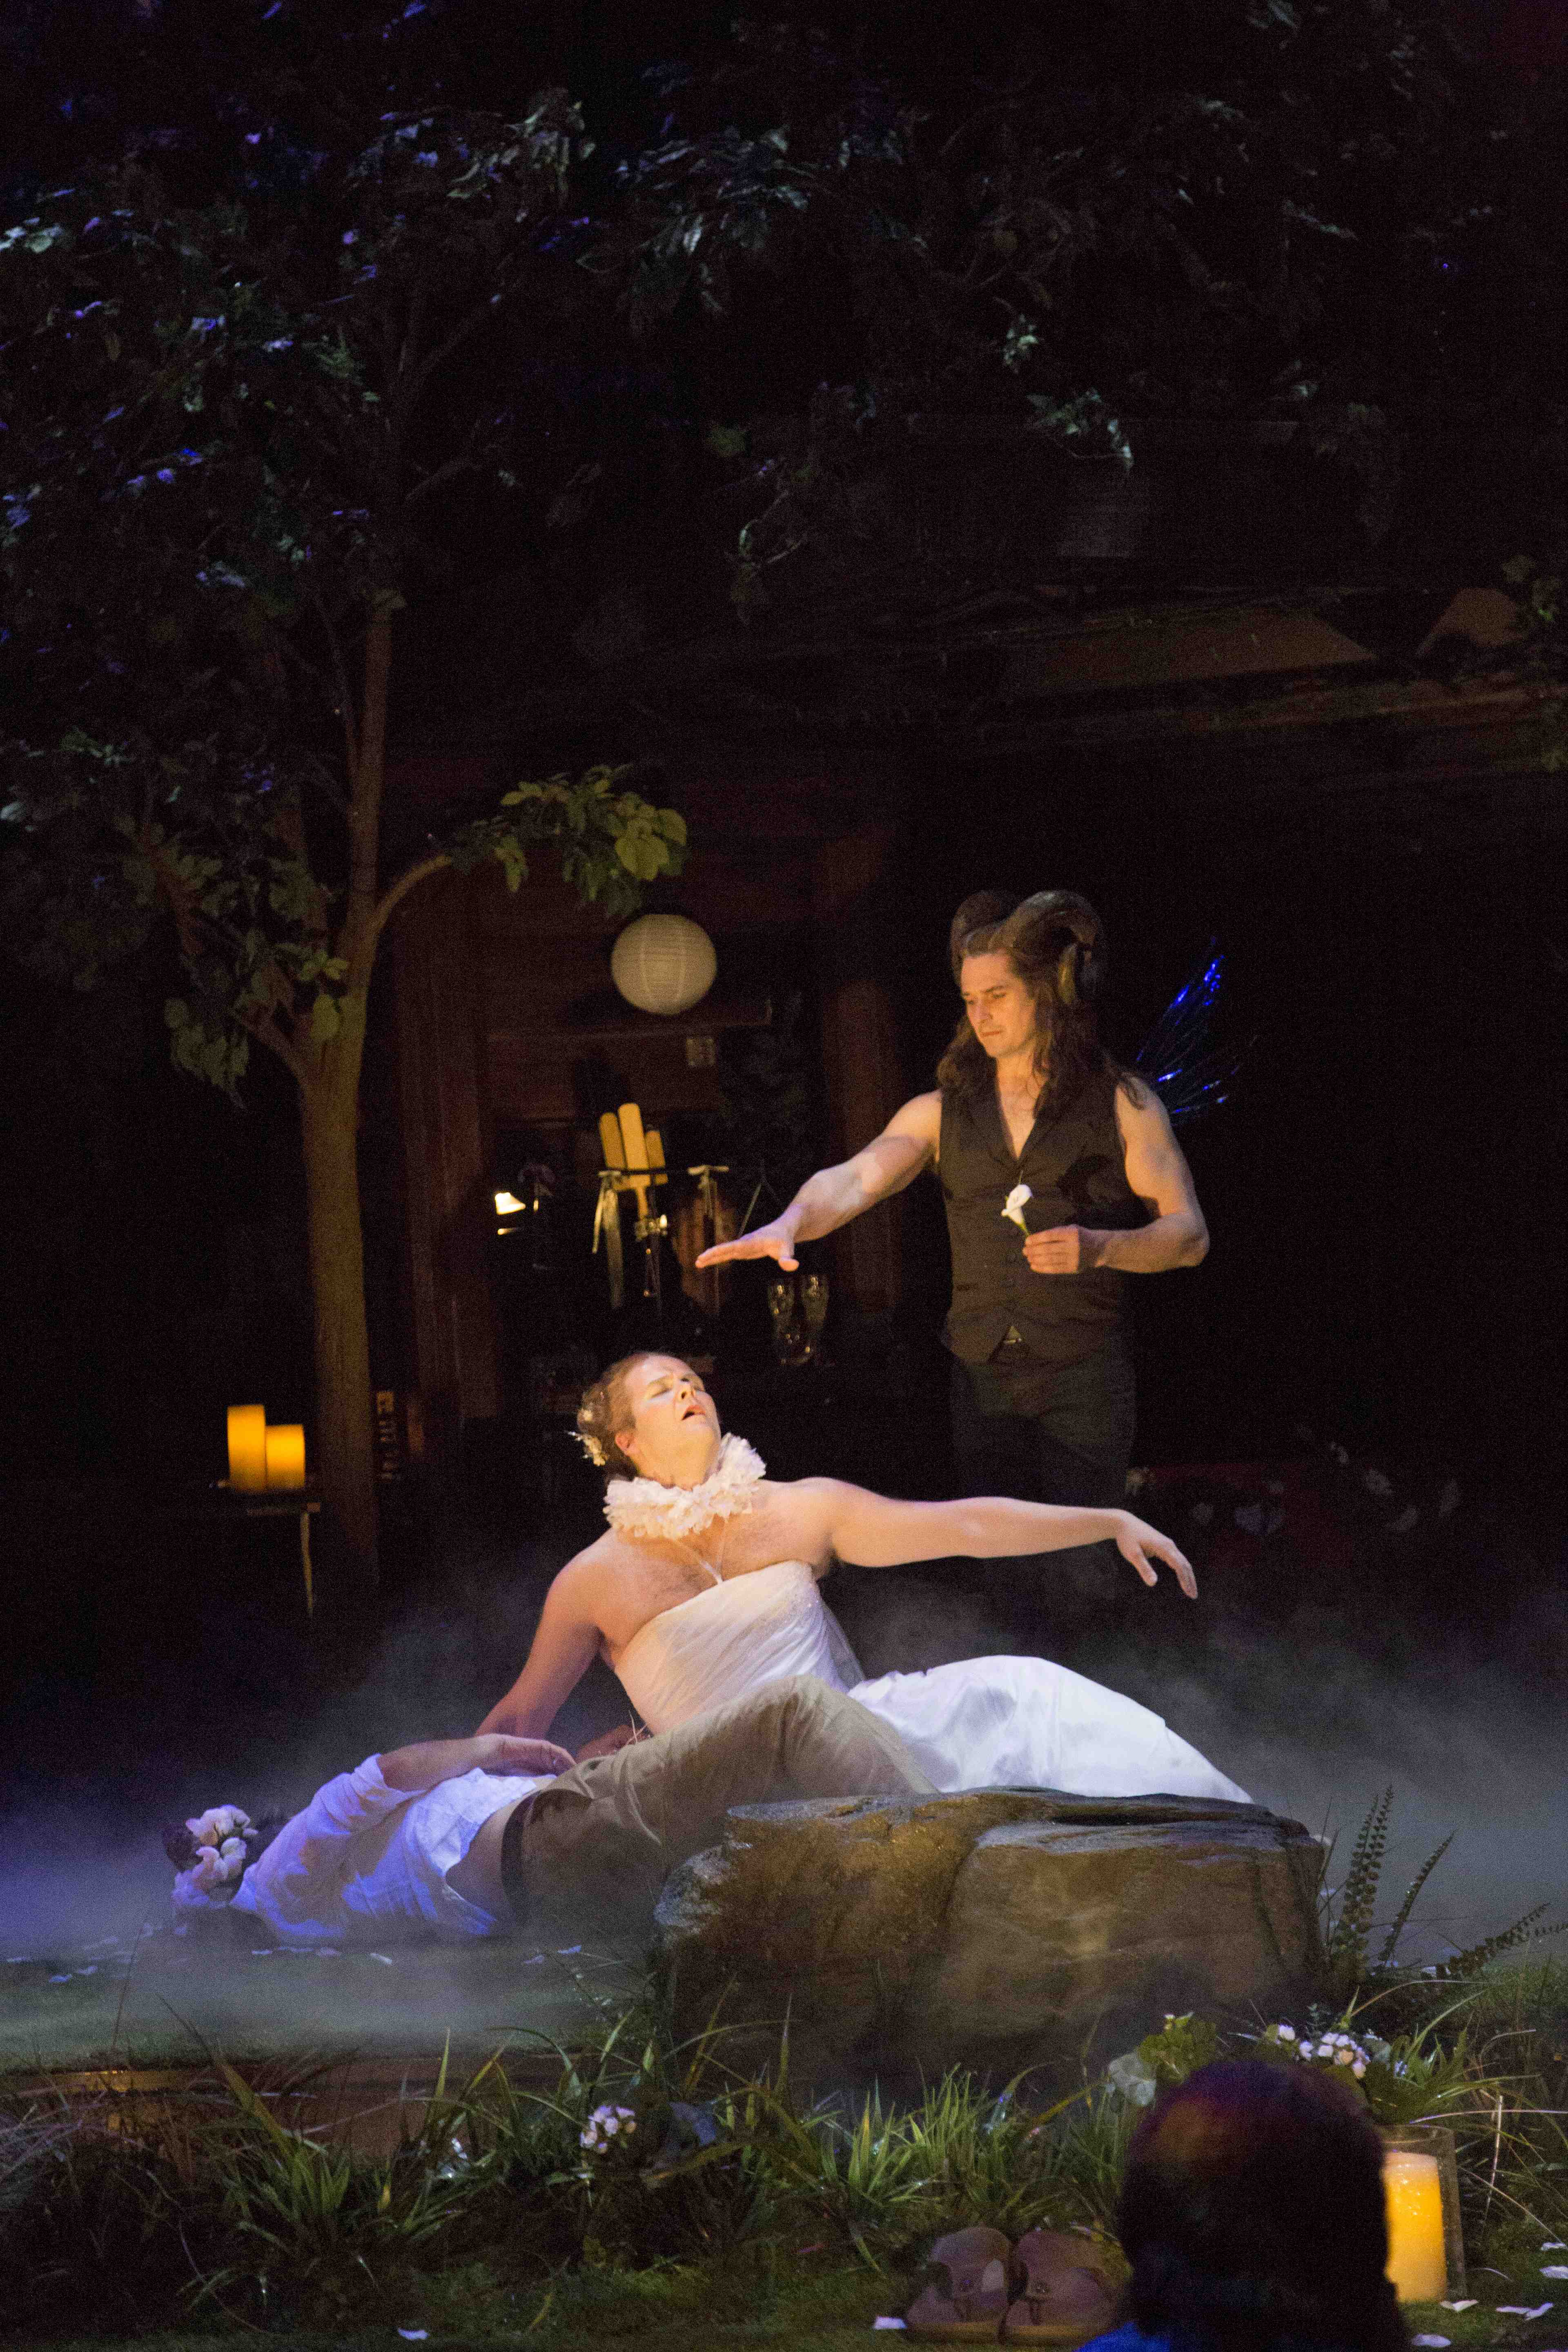 midsummer night s dream male dominance Everything you ever wanted to know about the quotes talking about gender in a midsummer night's dream, written by experts just for you.